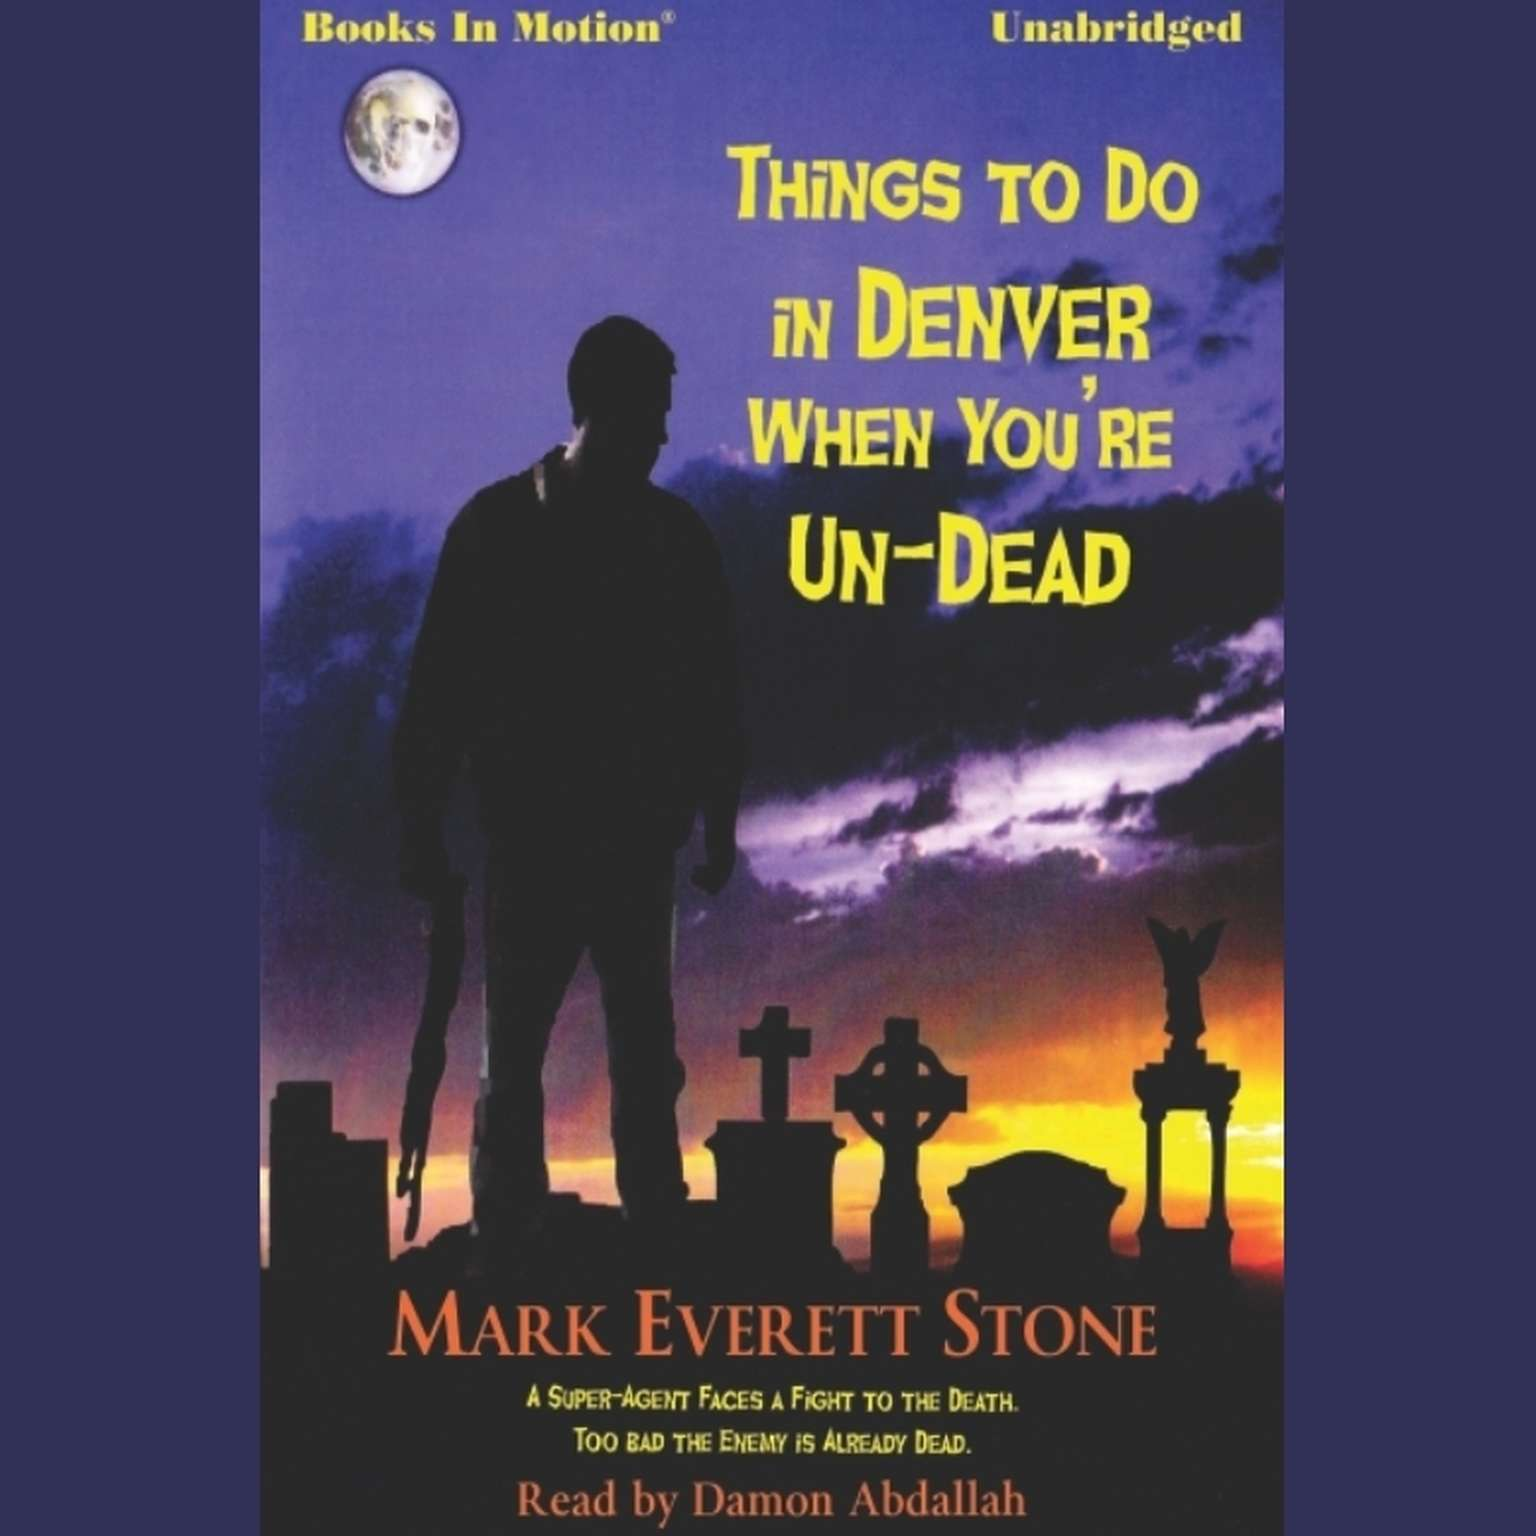 Things To Do In Denver When Youre Un-Dead Audiobook, by Mark Everett Stone